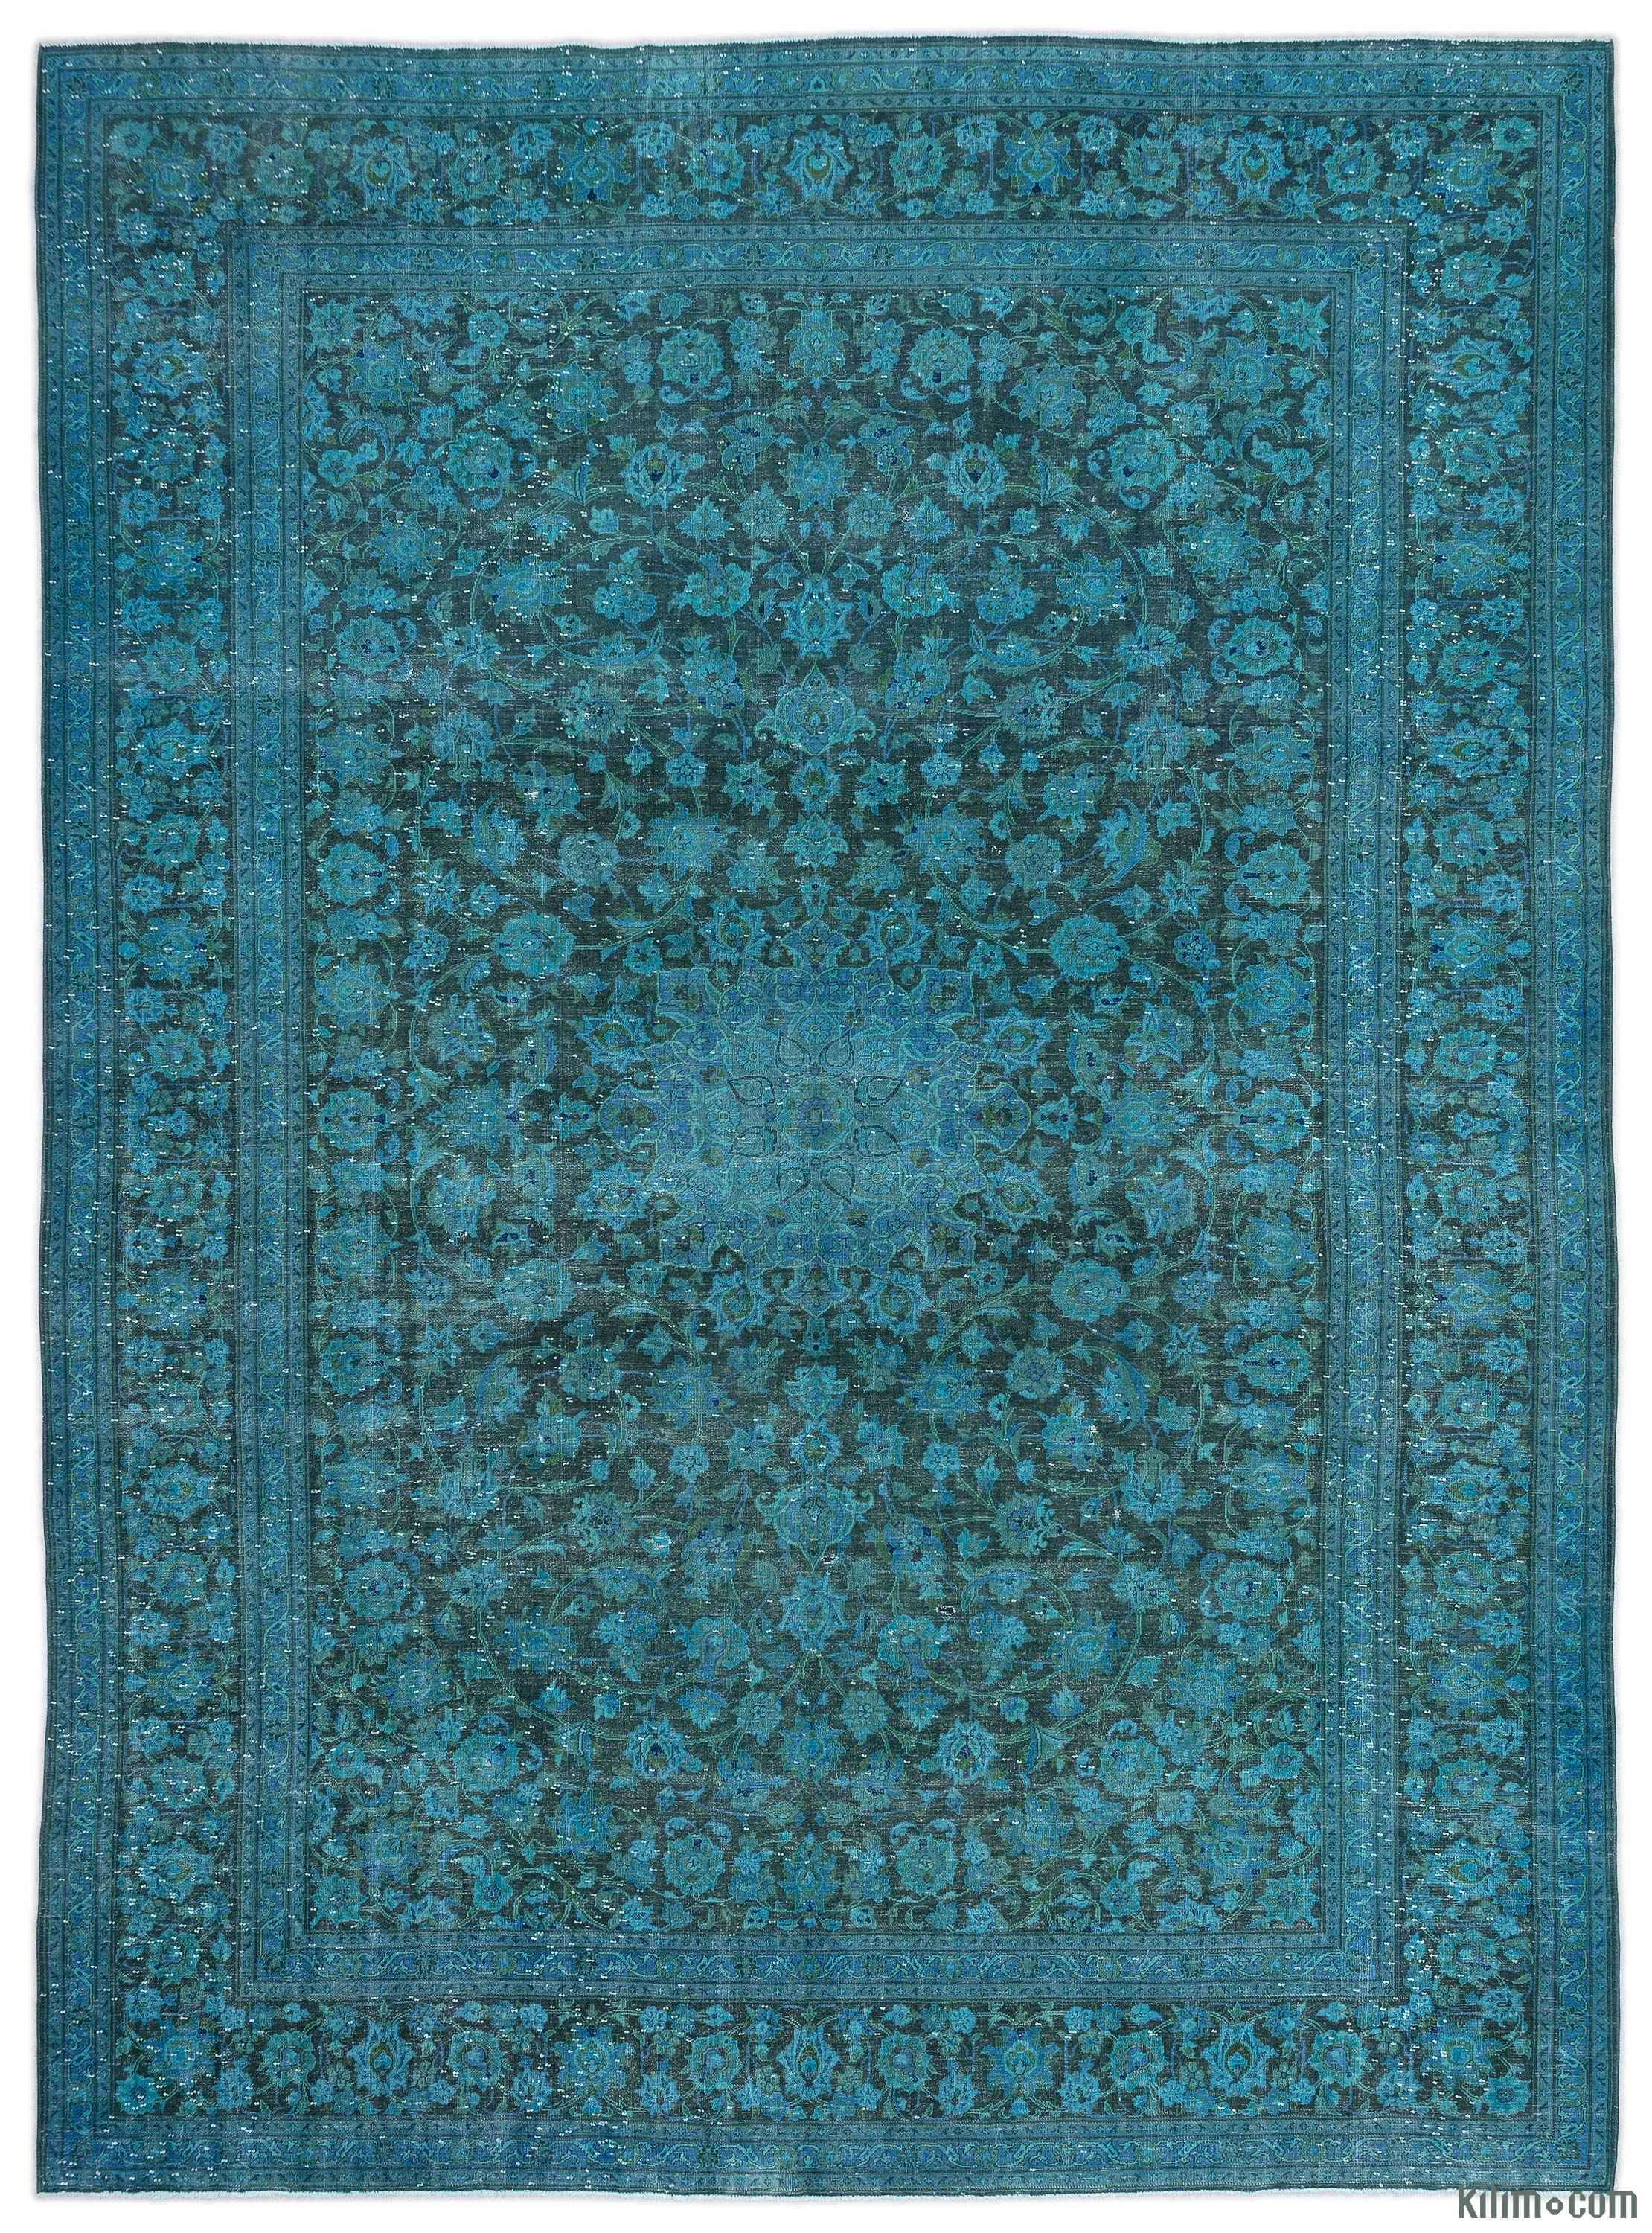 Turquoise Over Dyed Vintage Rug 9 11 X 13 4 119 In 160